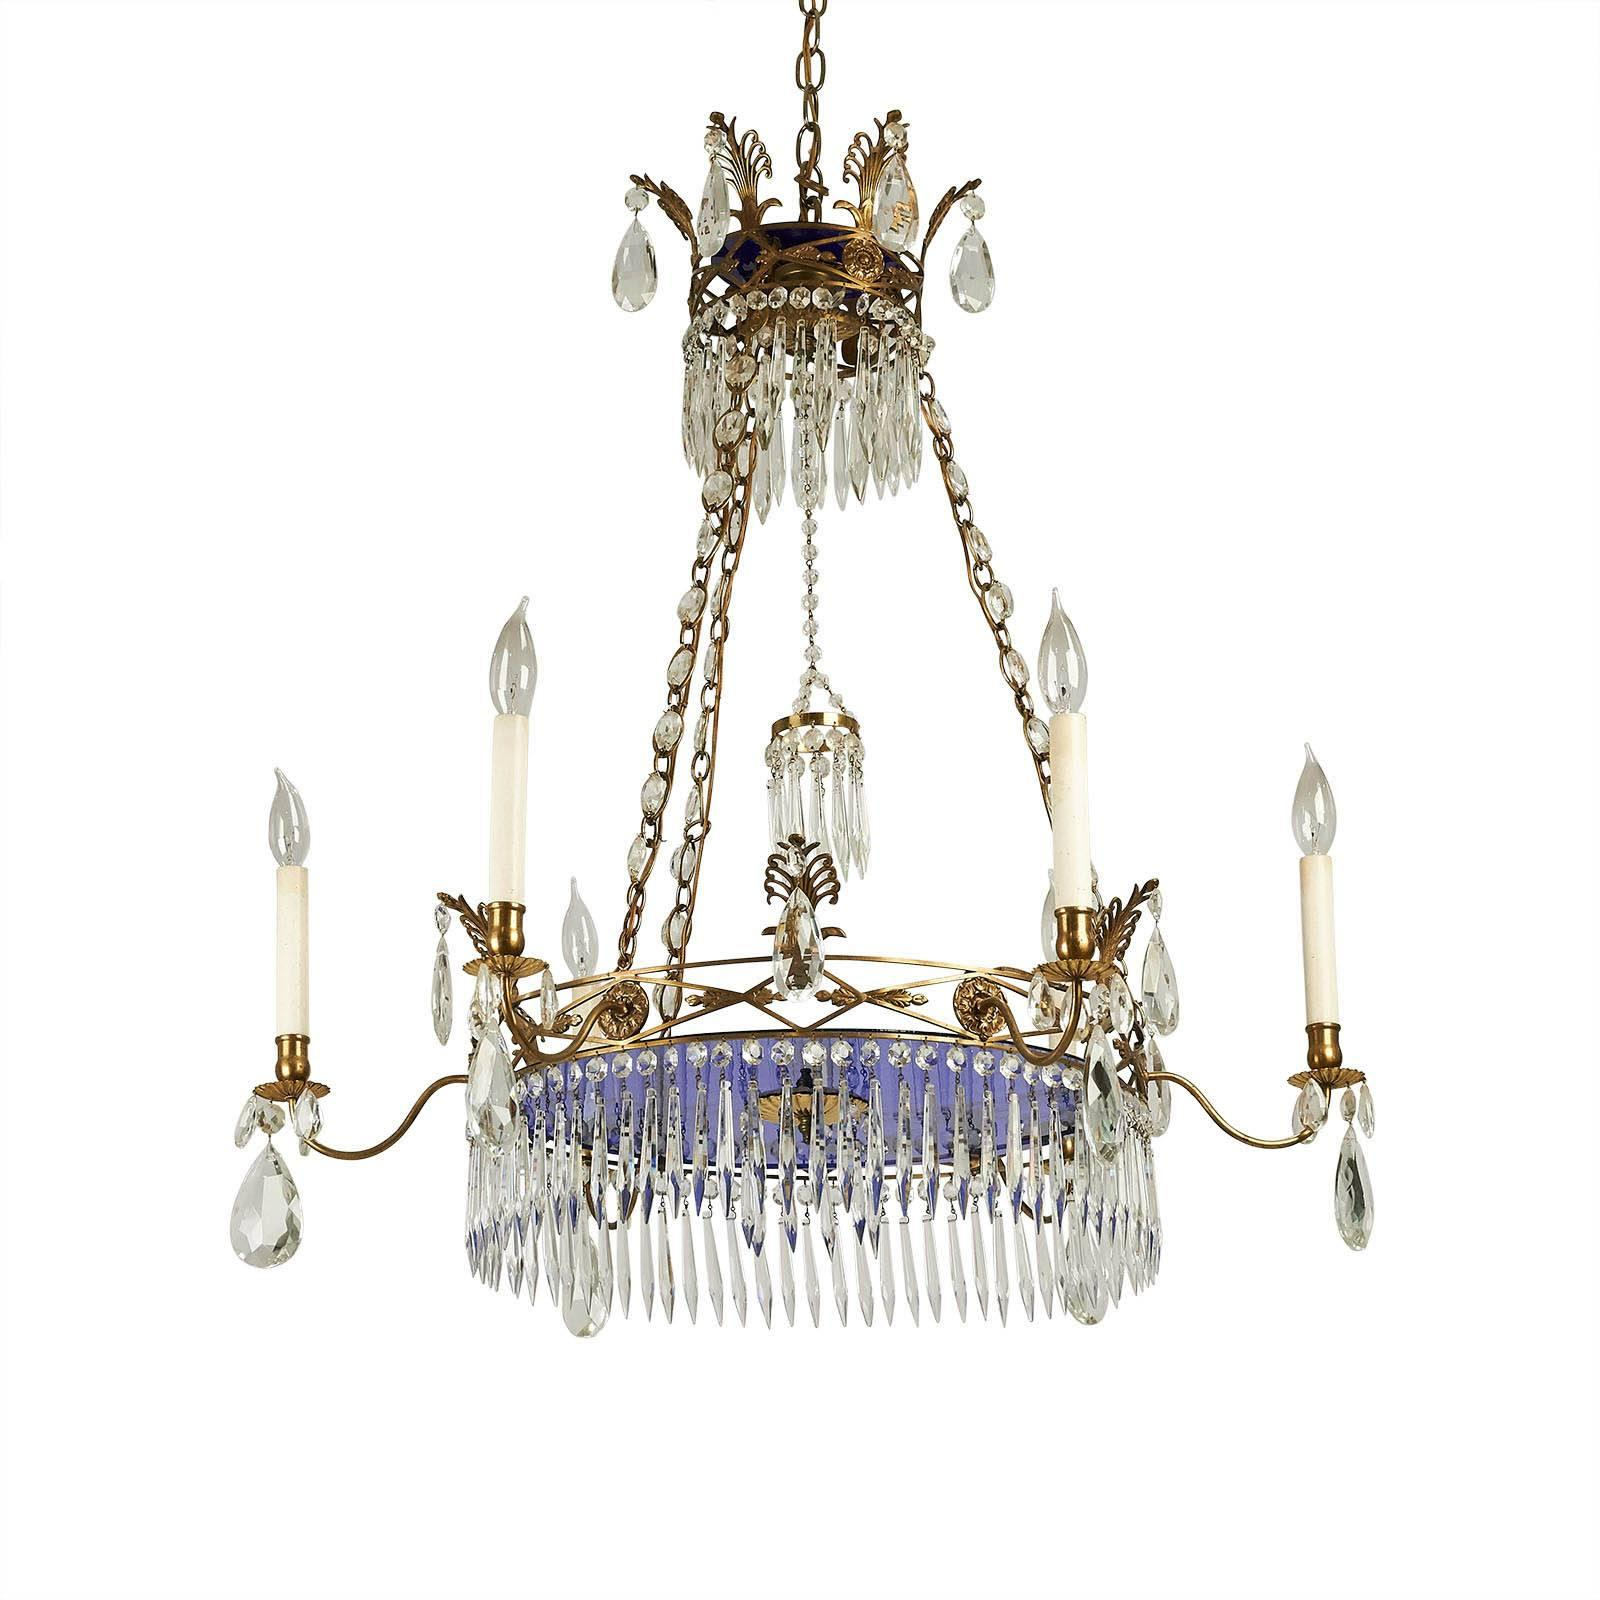 A beautiful larger crystal chandelier with gilt